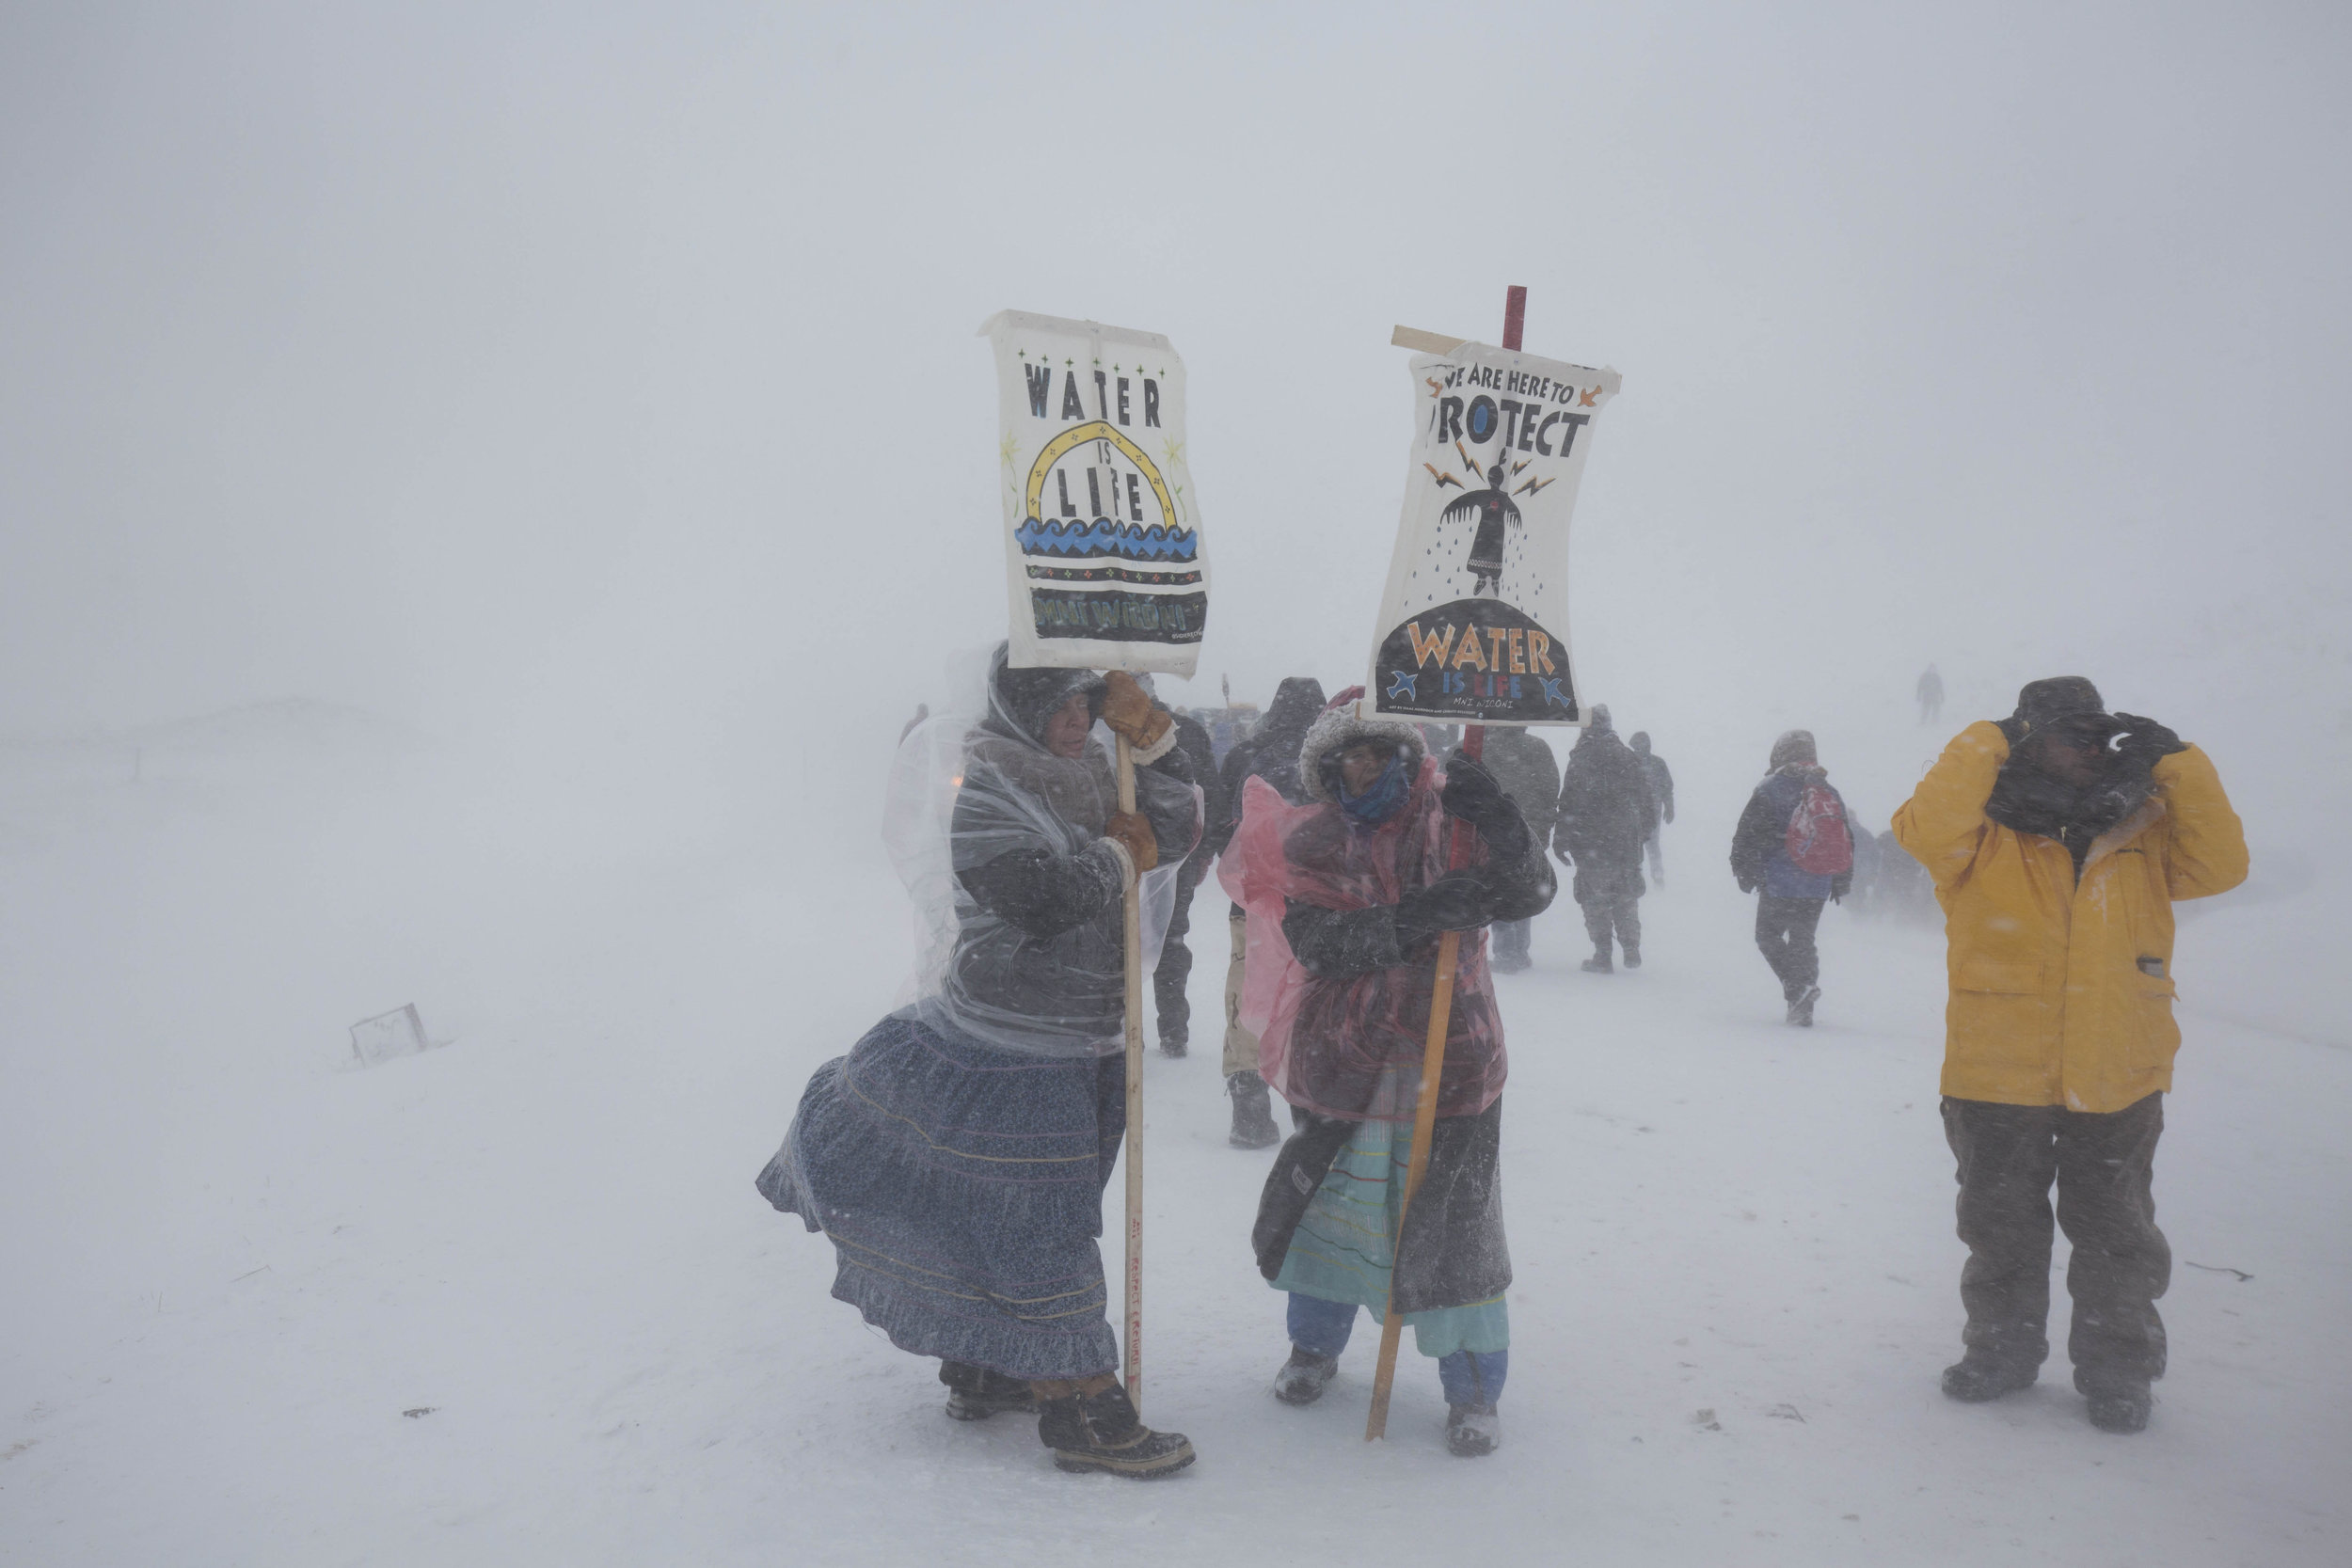 Two Water Protectors carry signs along highway 1806 on December 5, 2016, not far from Backwater Bridge where law enforcement and National Guard have blockaded.